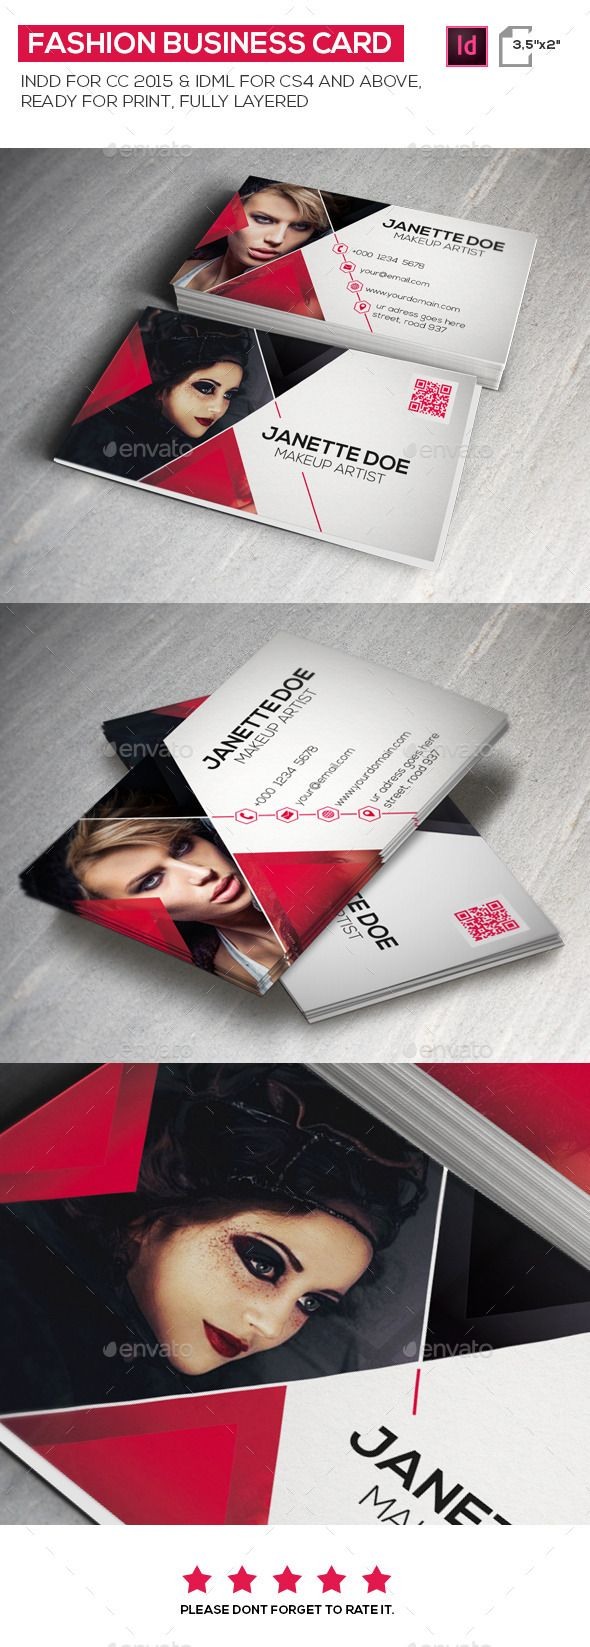 Fashion Business Card Template #design Buy Now: http://graphicriver.net/item/fashion-business-card/12876511?ref=ksioks